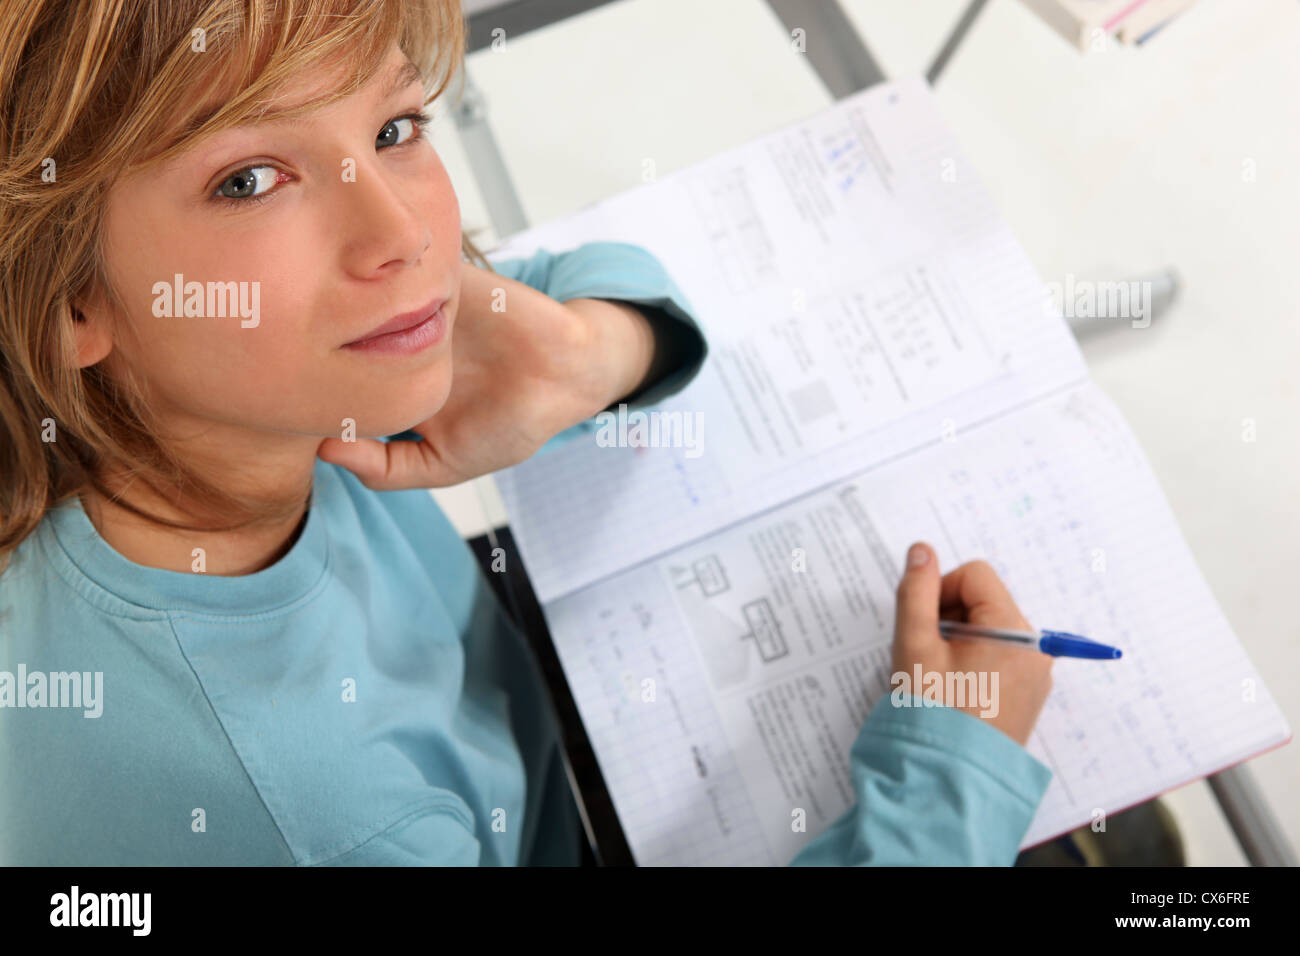 Prepubescent boy sitting an exam - Stock Image